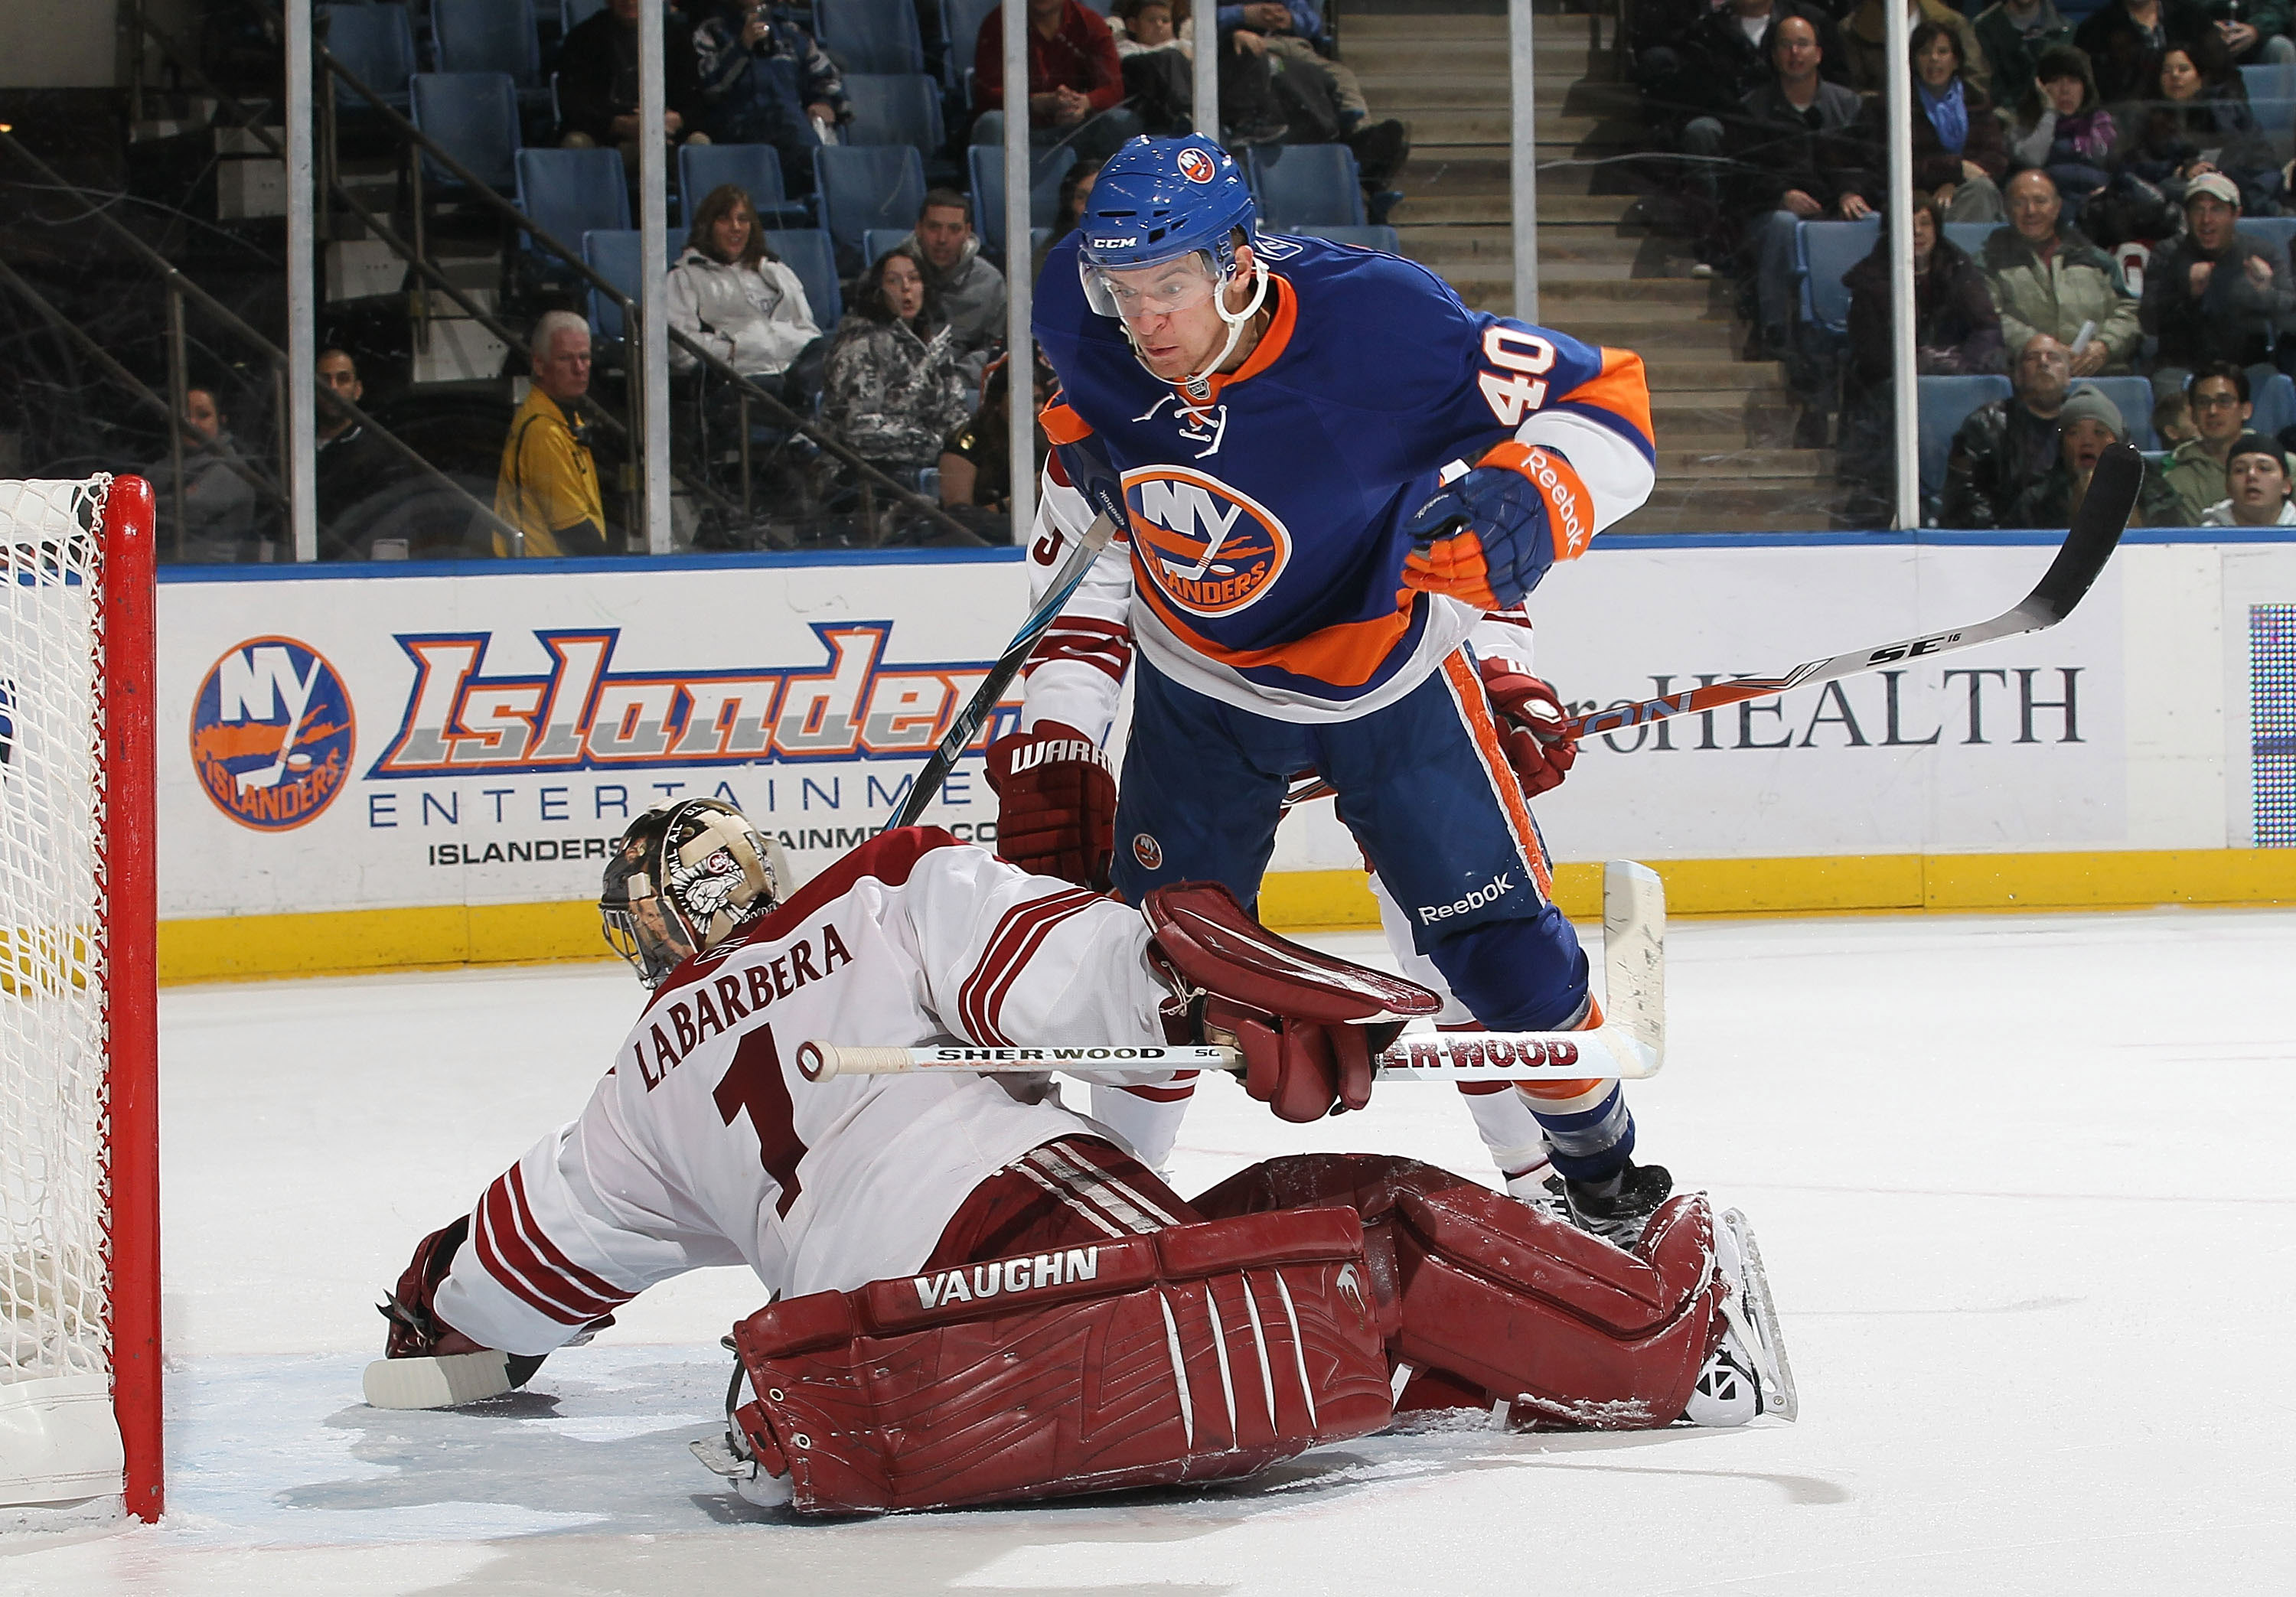 UNIONDALE, NY - DECEMBER 18: Michael Grabner #40 of the New York Islanders scores a goal against Jason LaBarbera #1 of the Phoenix Coyotes during their game on December 18, 2010 at the Nassau Coliseum in Uniondale, New York.  (Photo by Al Bello/Getty Imag